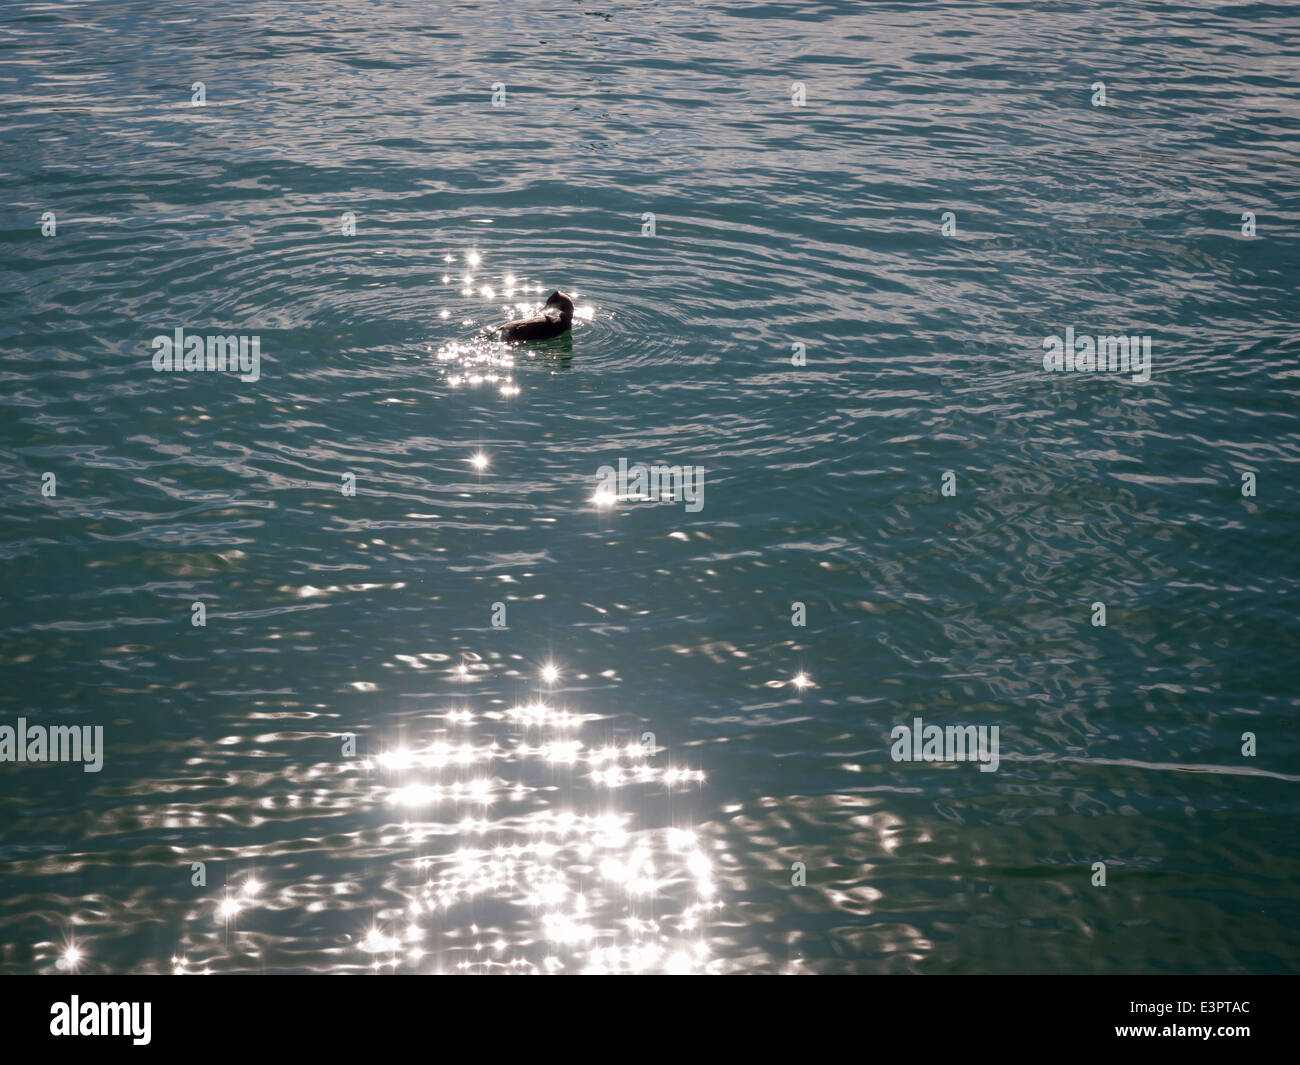 Great crested grebe swimming on a lake with sun reflections - Stock Image